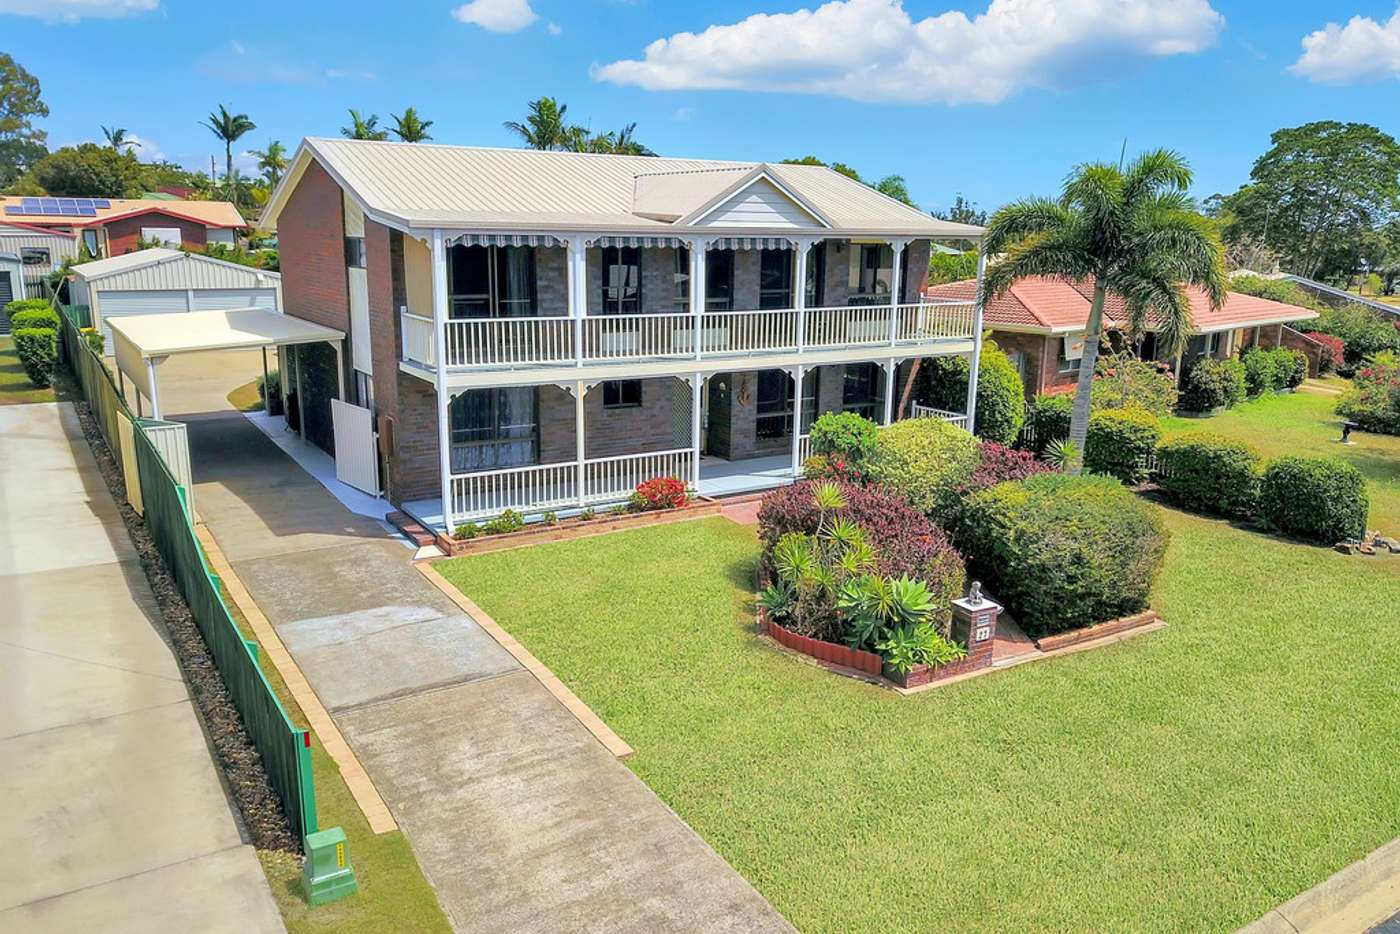 Main view of Homely house listing, 27 Haydn Drive, Kawungan QLD 4655